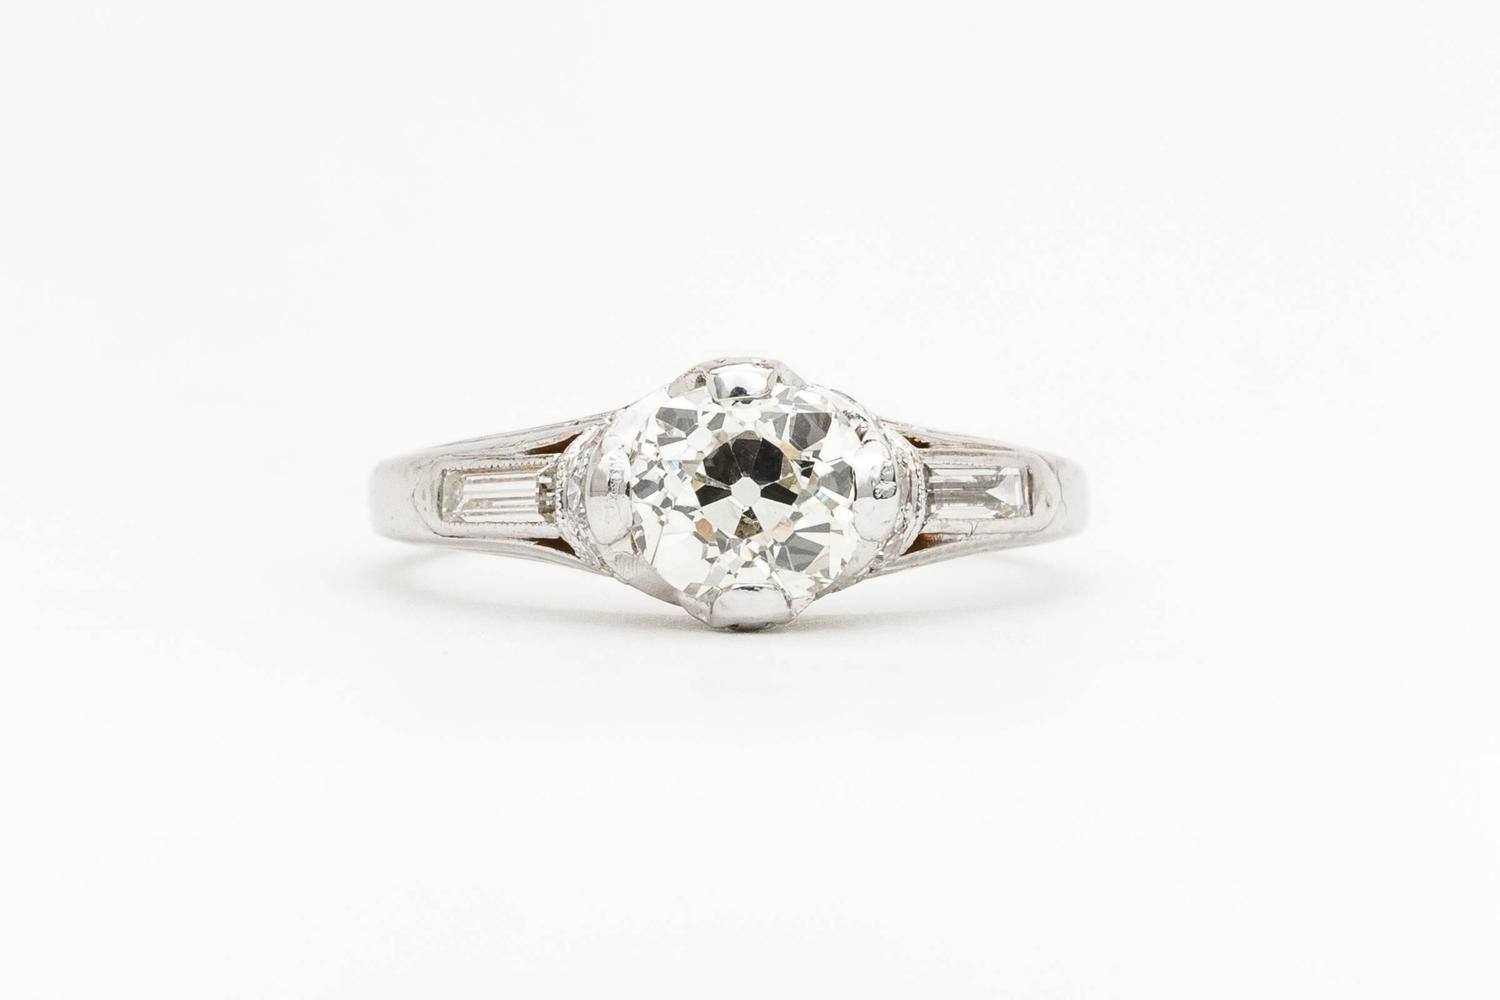 Art Nouveau 1 12ct Diamond Engagement Ring in Platinum For Sale at 1stdibs